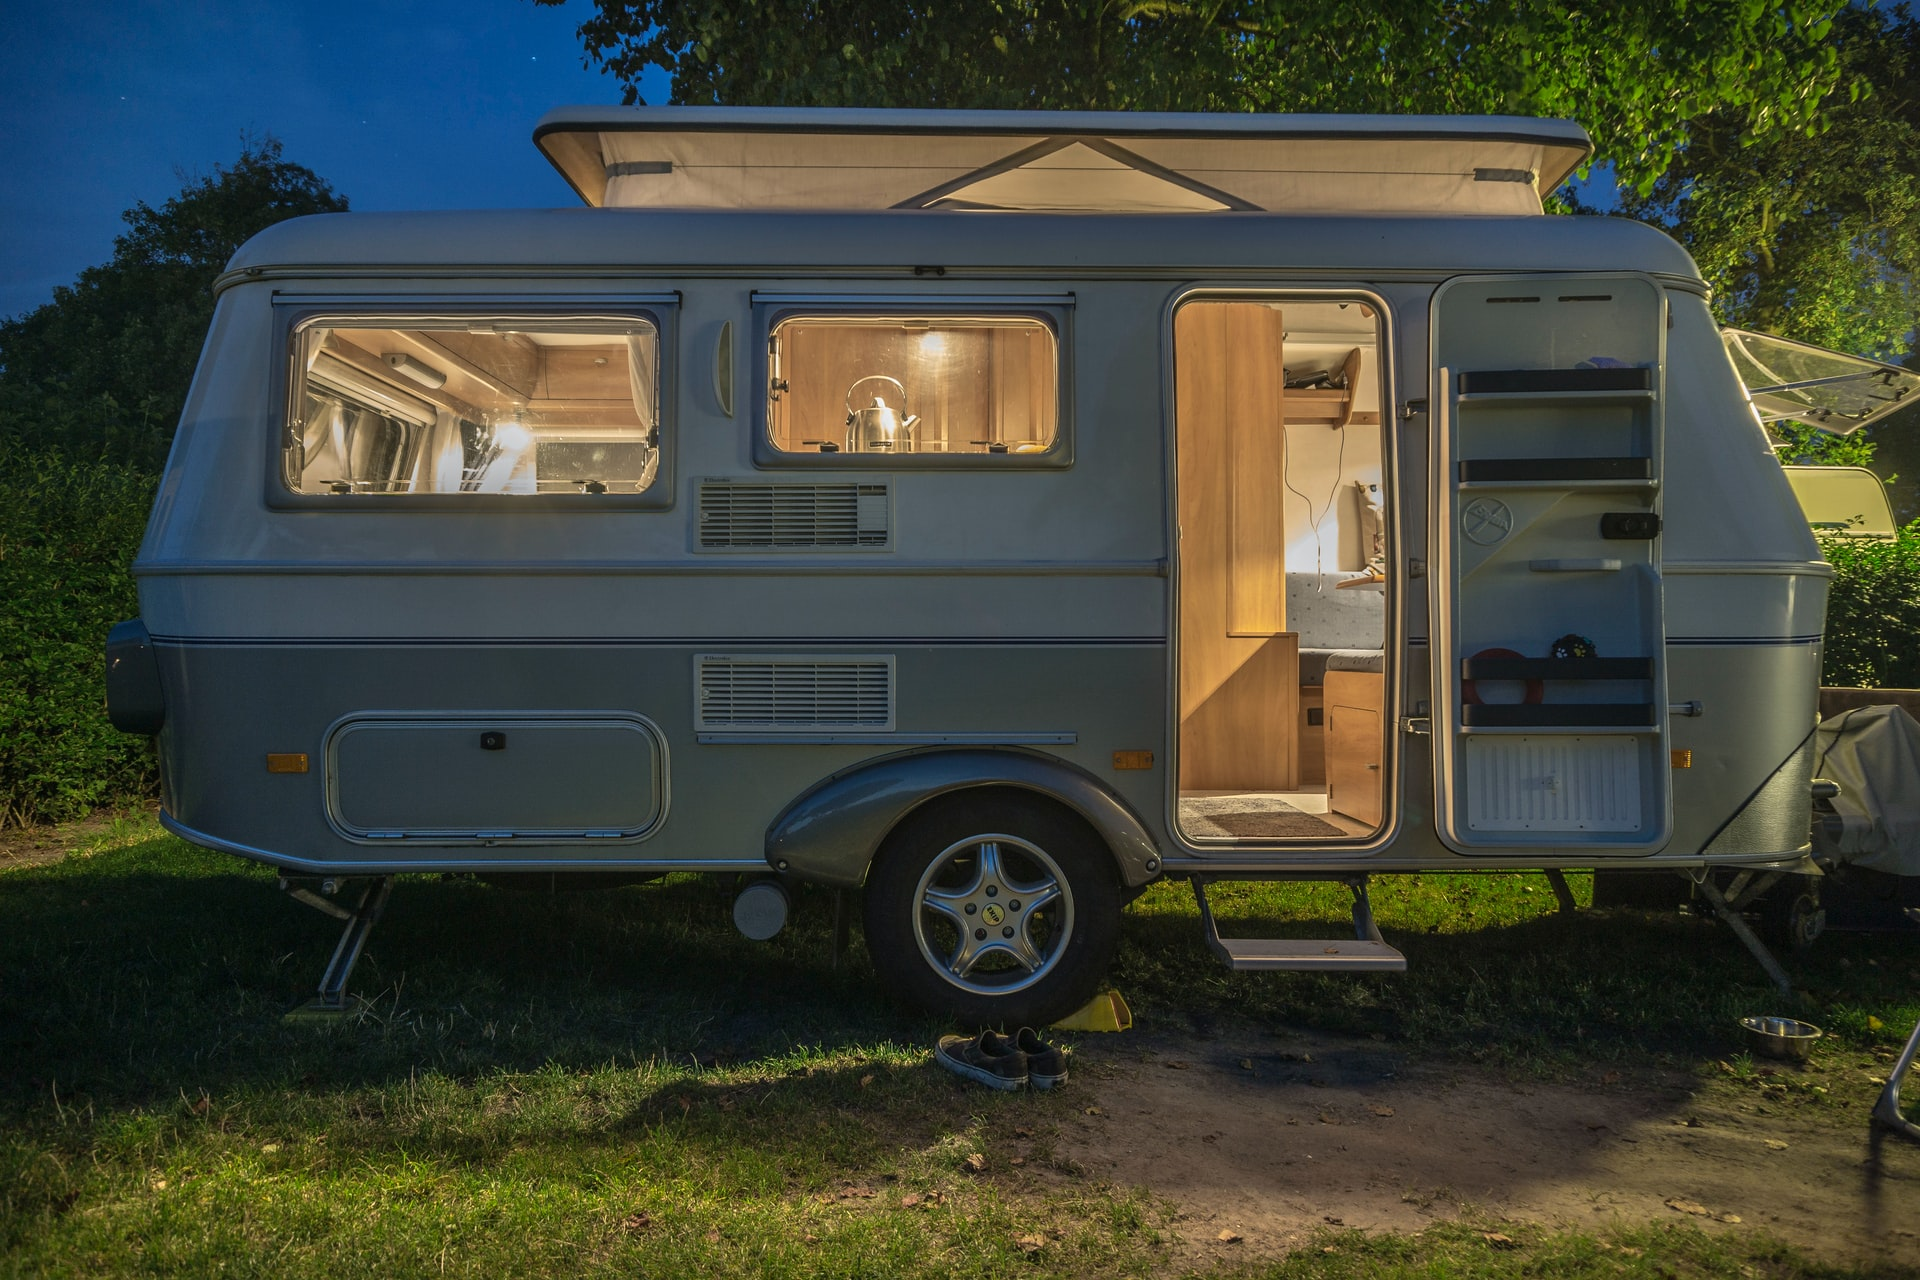 Tips for Living on the Road: How to Make Your RV a Home